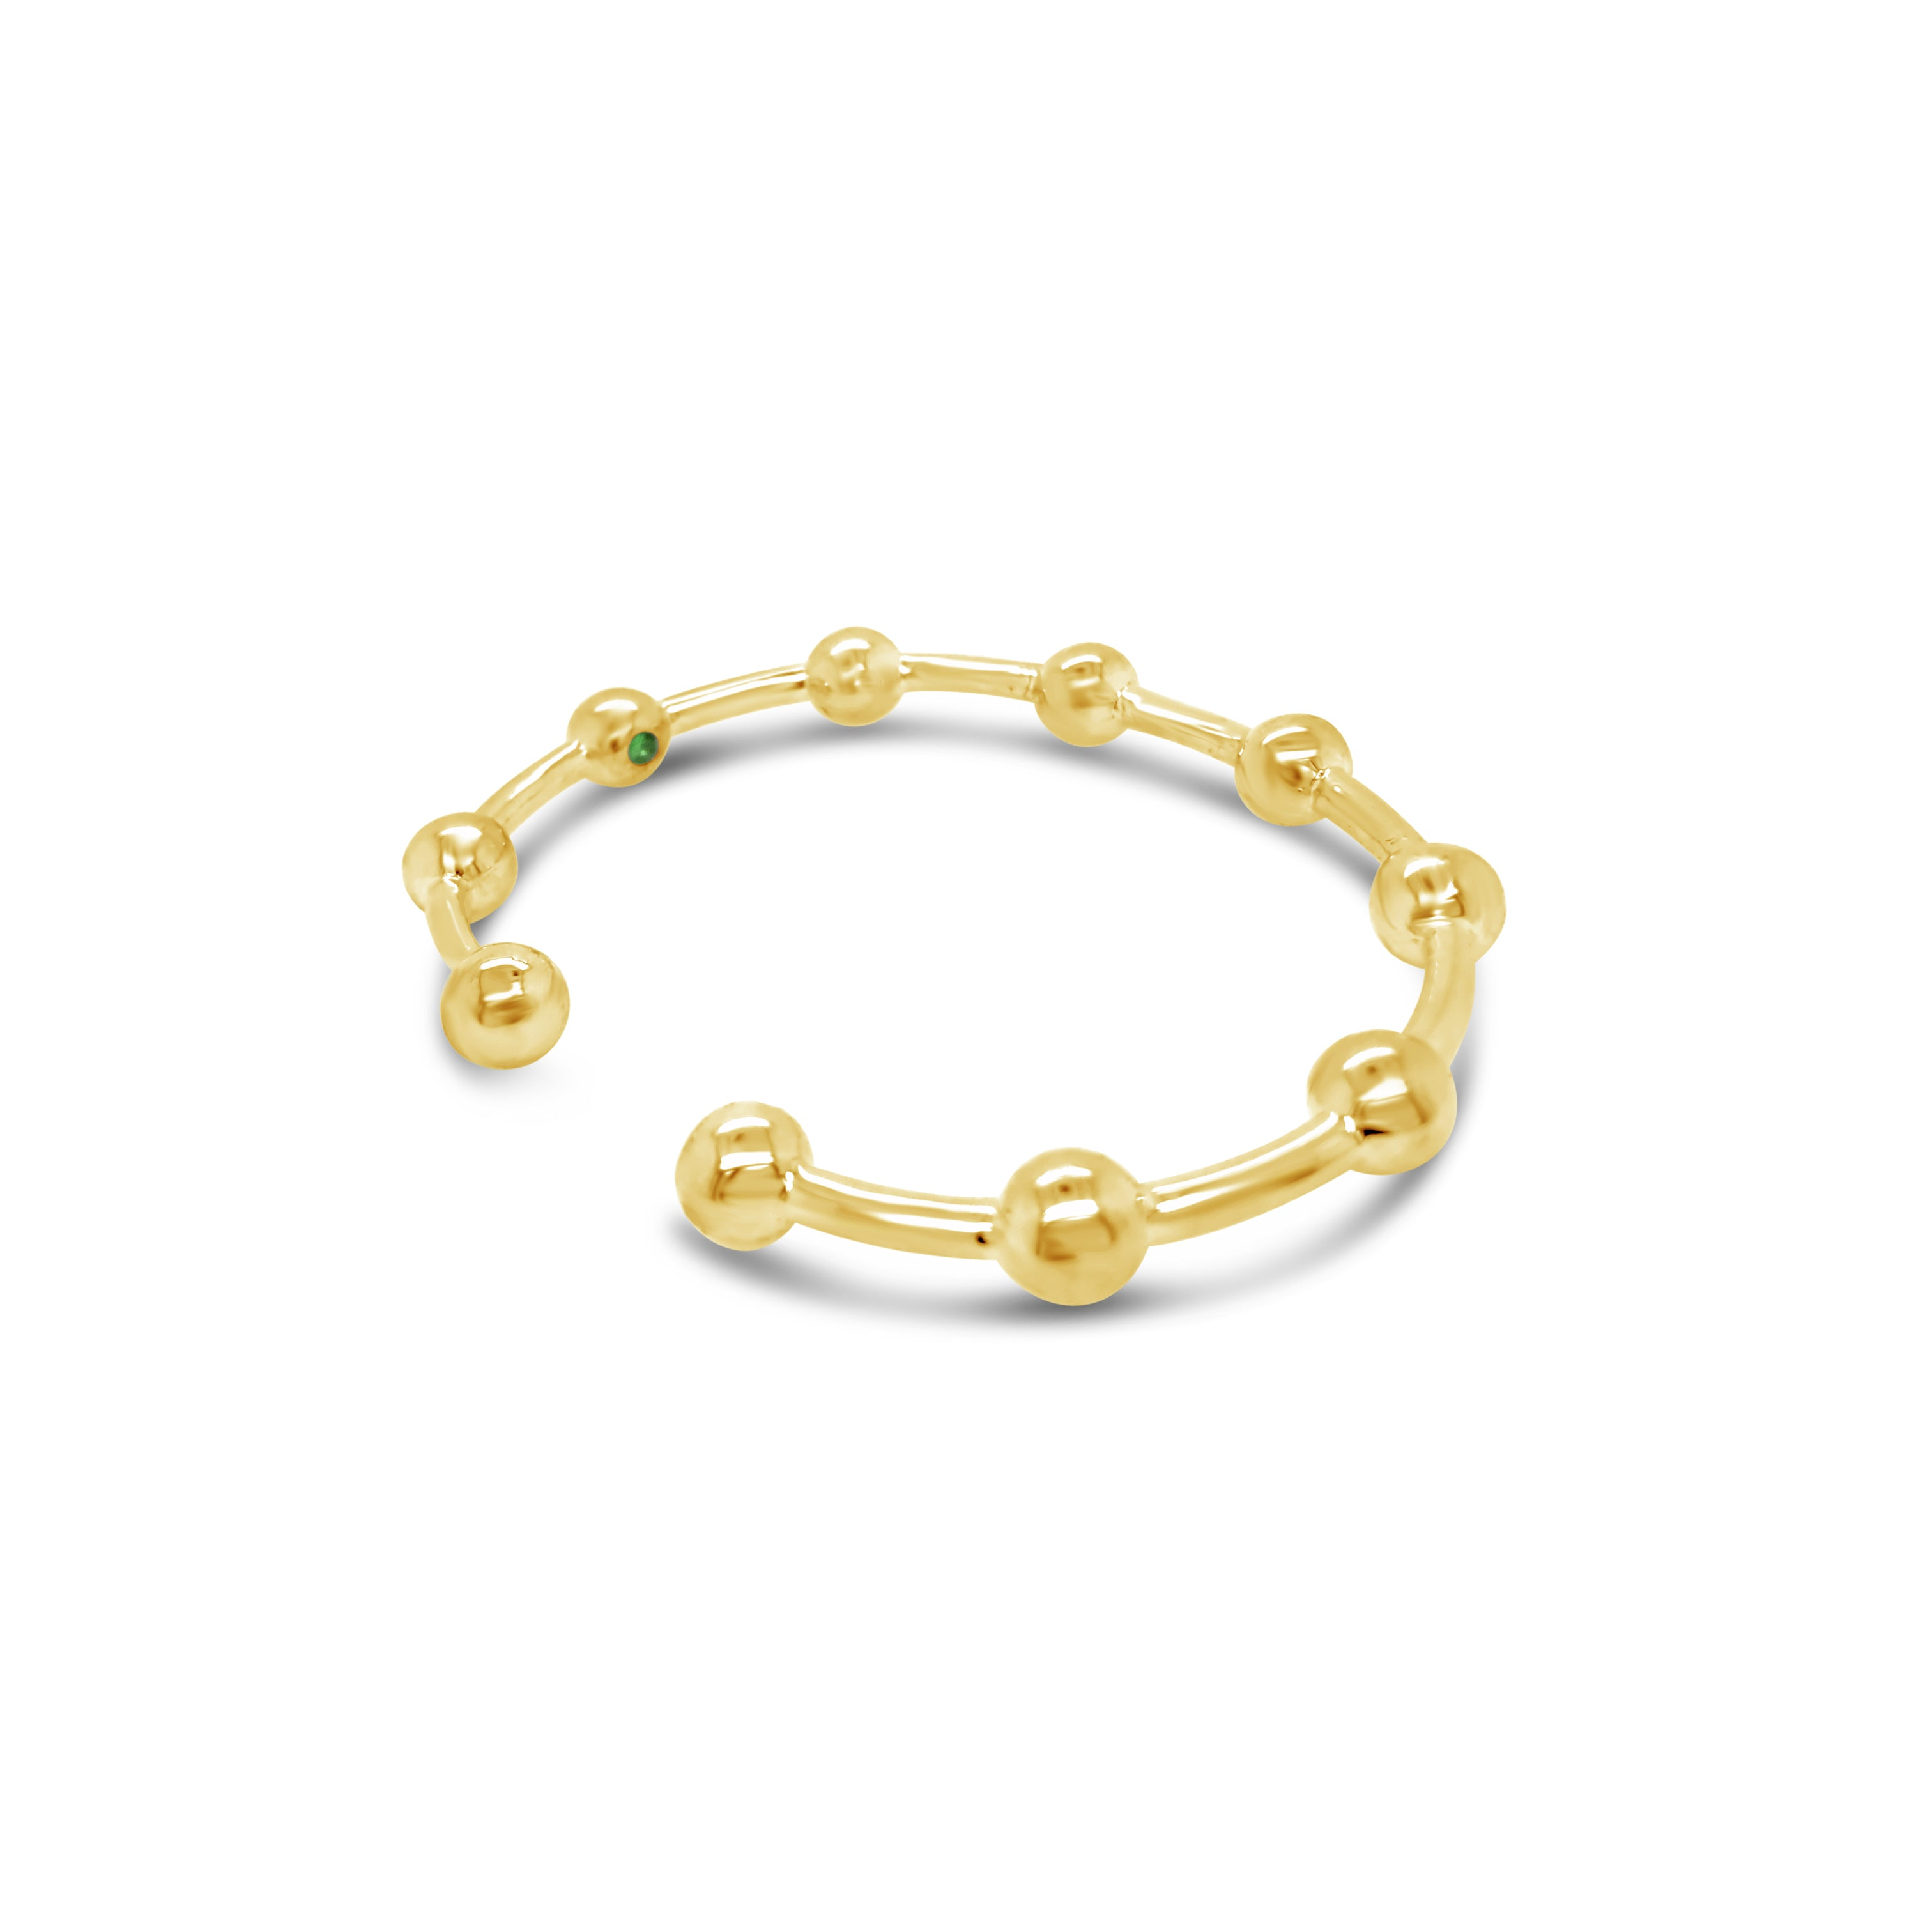 Contemporary 18k gold ball cuff bracelet